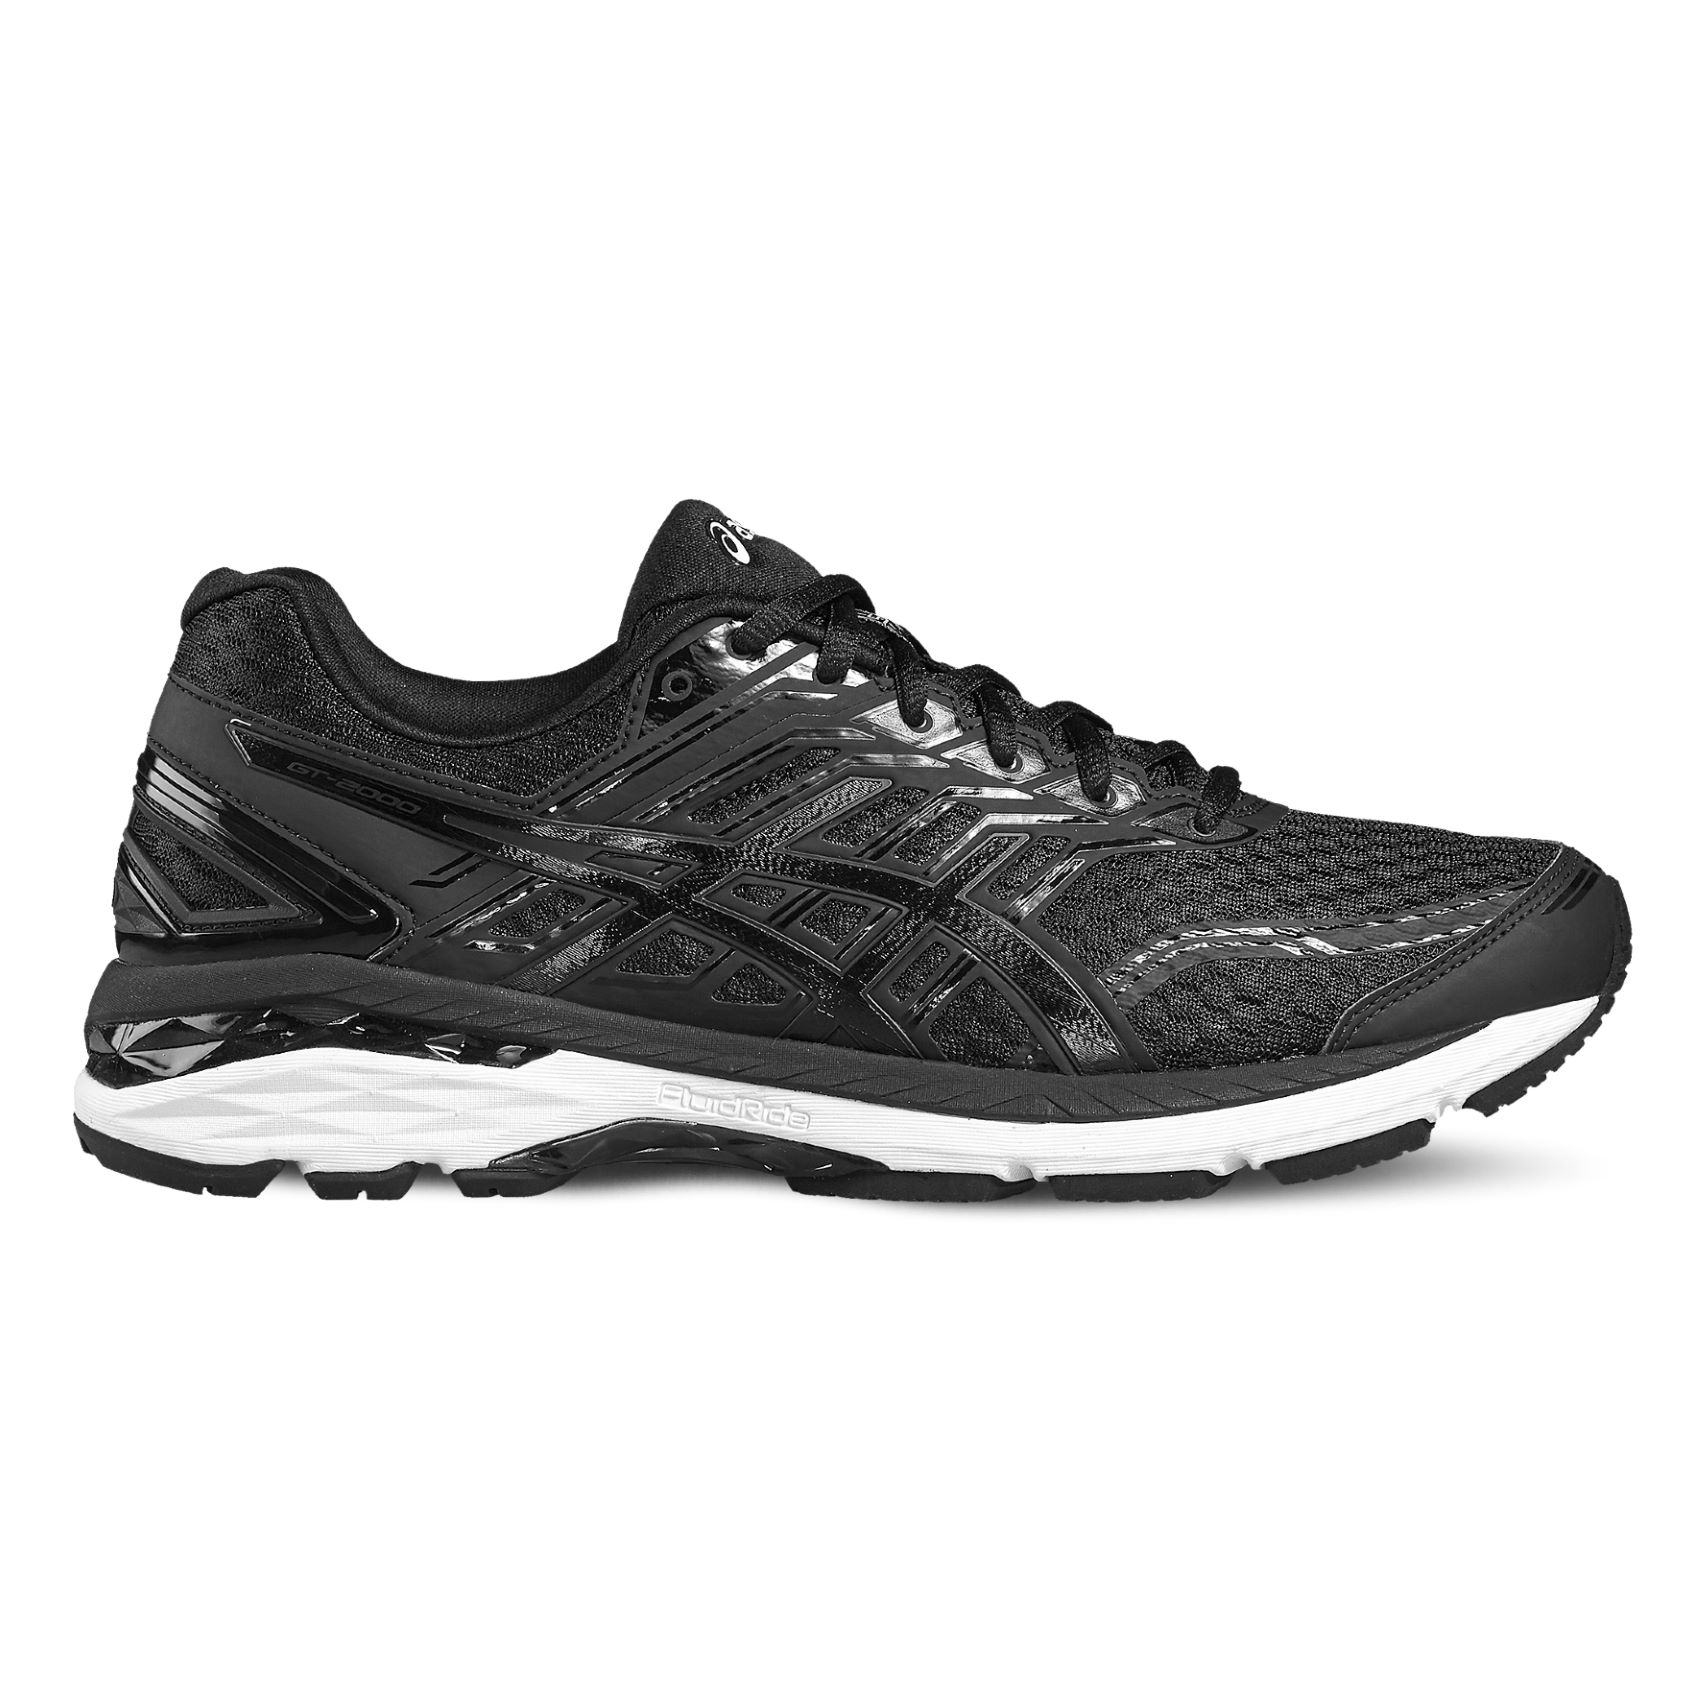 Best Running Shoe For Overpronators